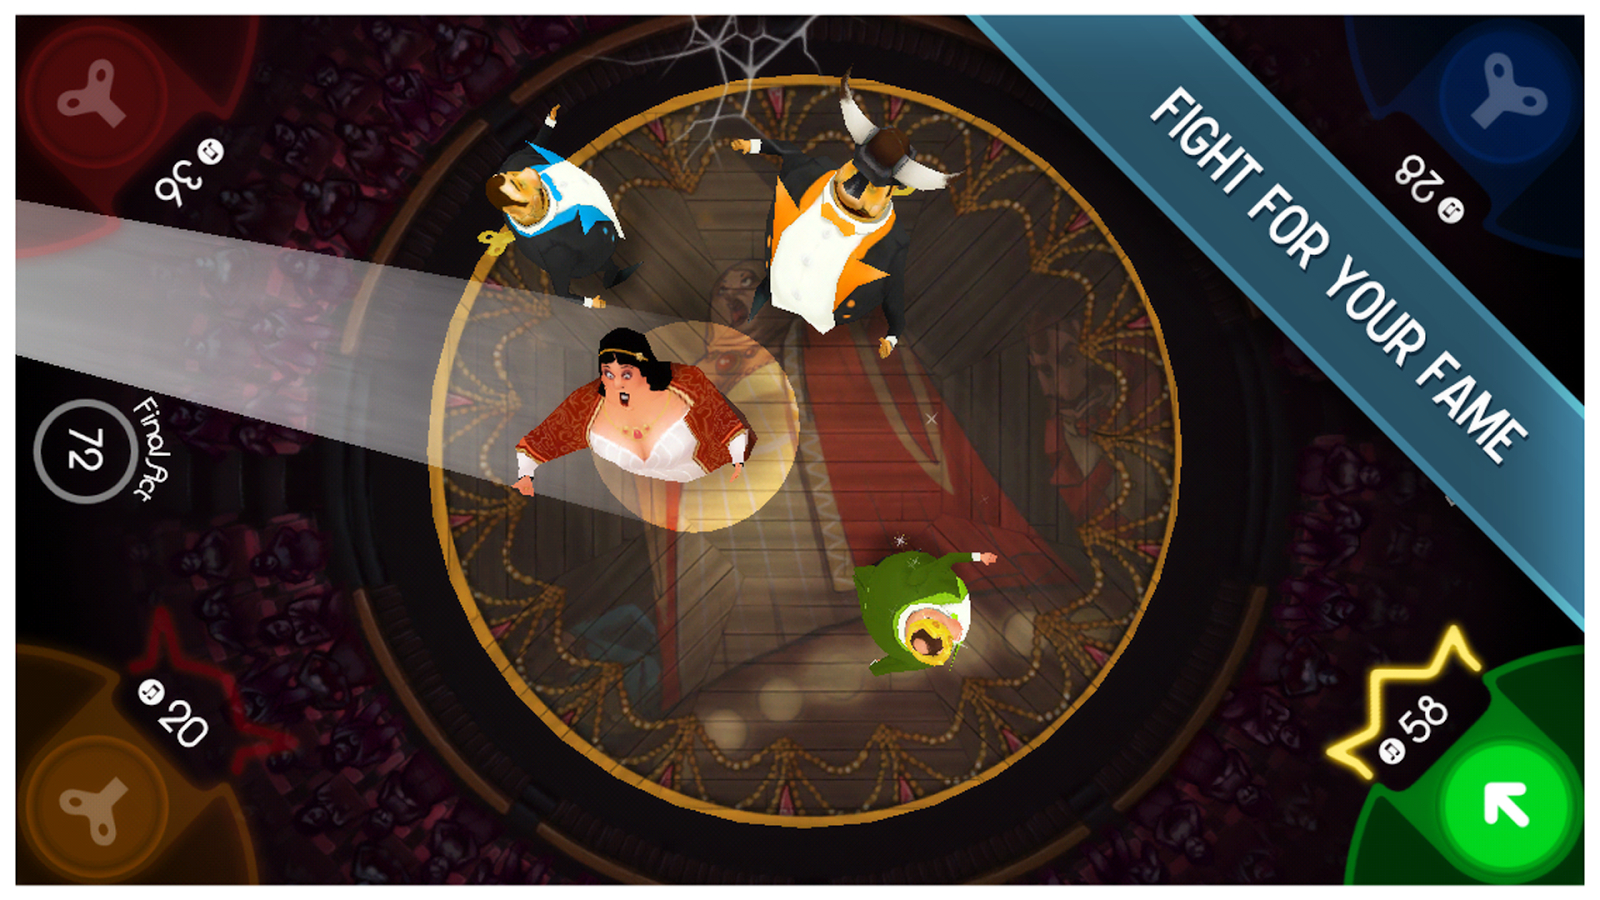 King of Opera - Party Game! Screenshot 12